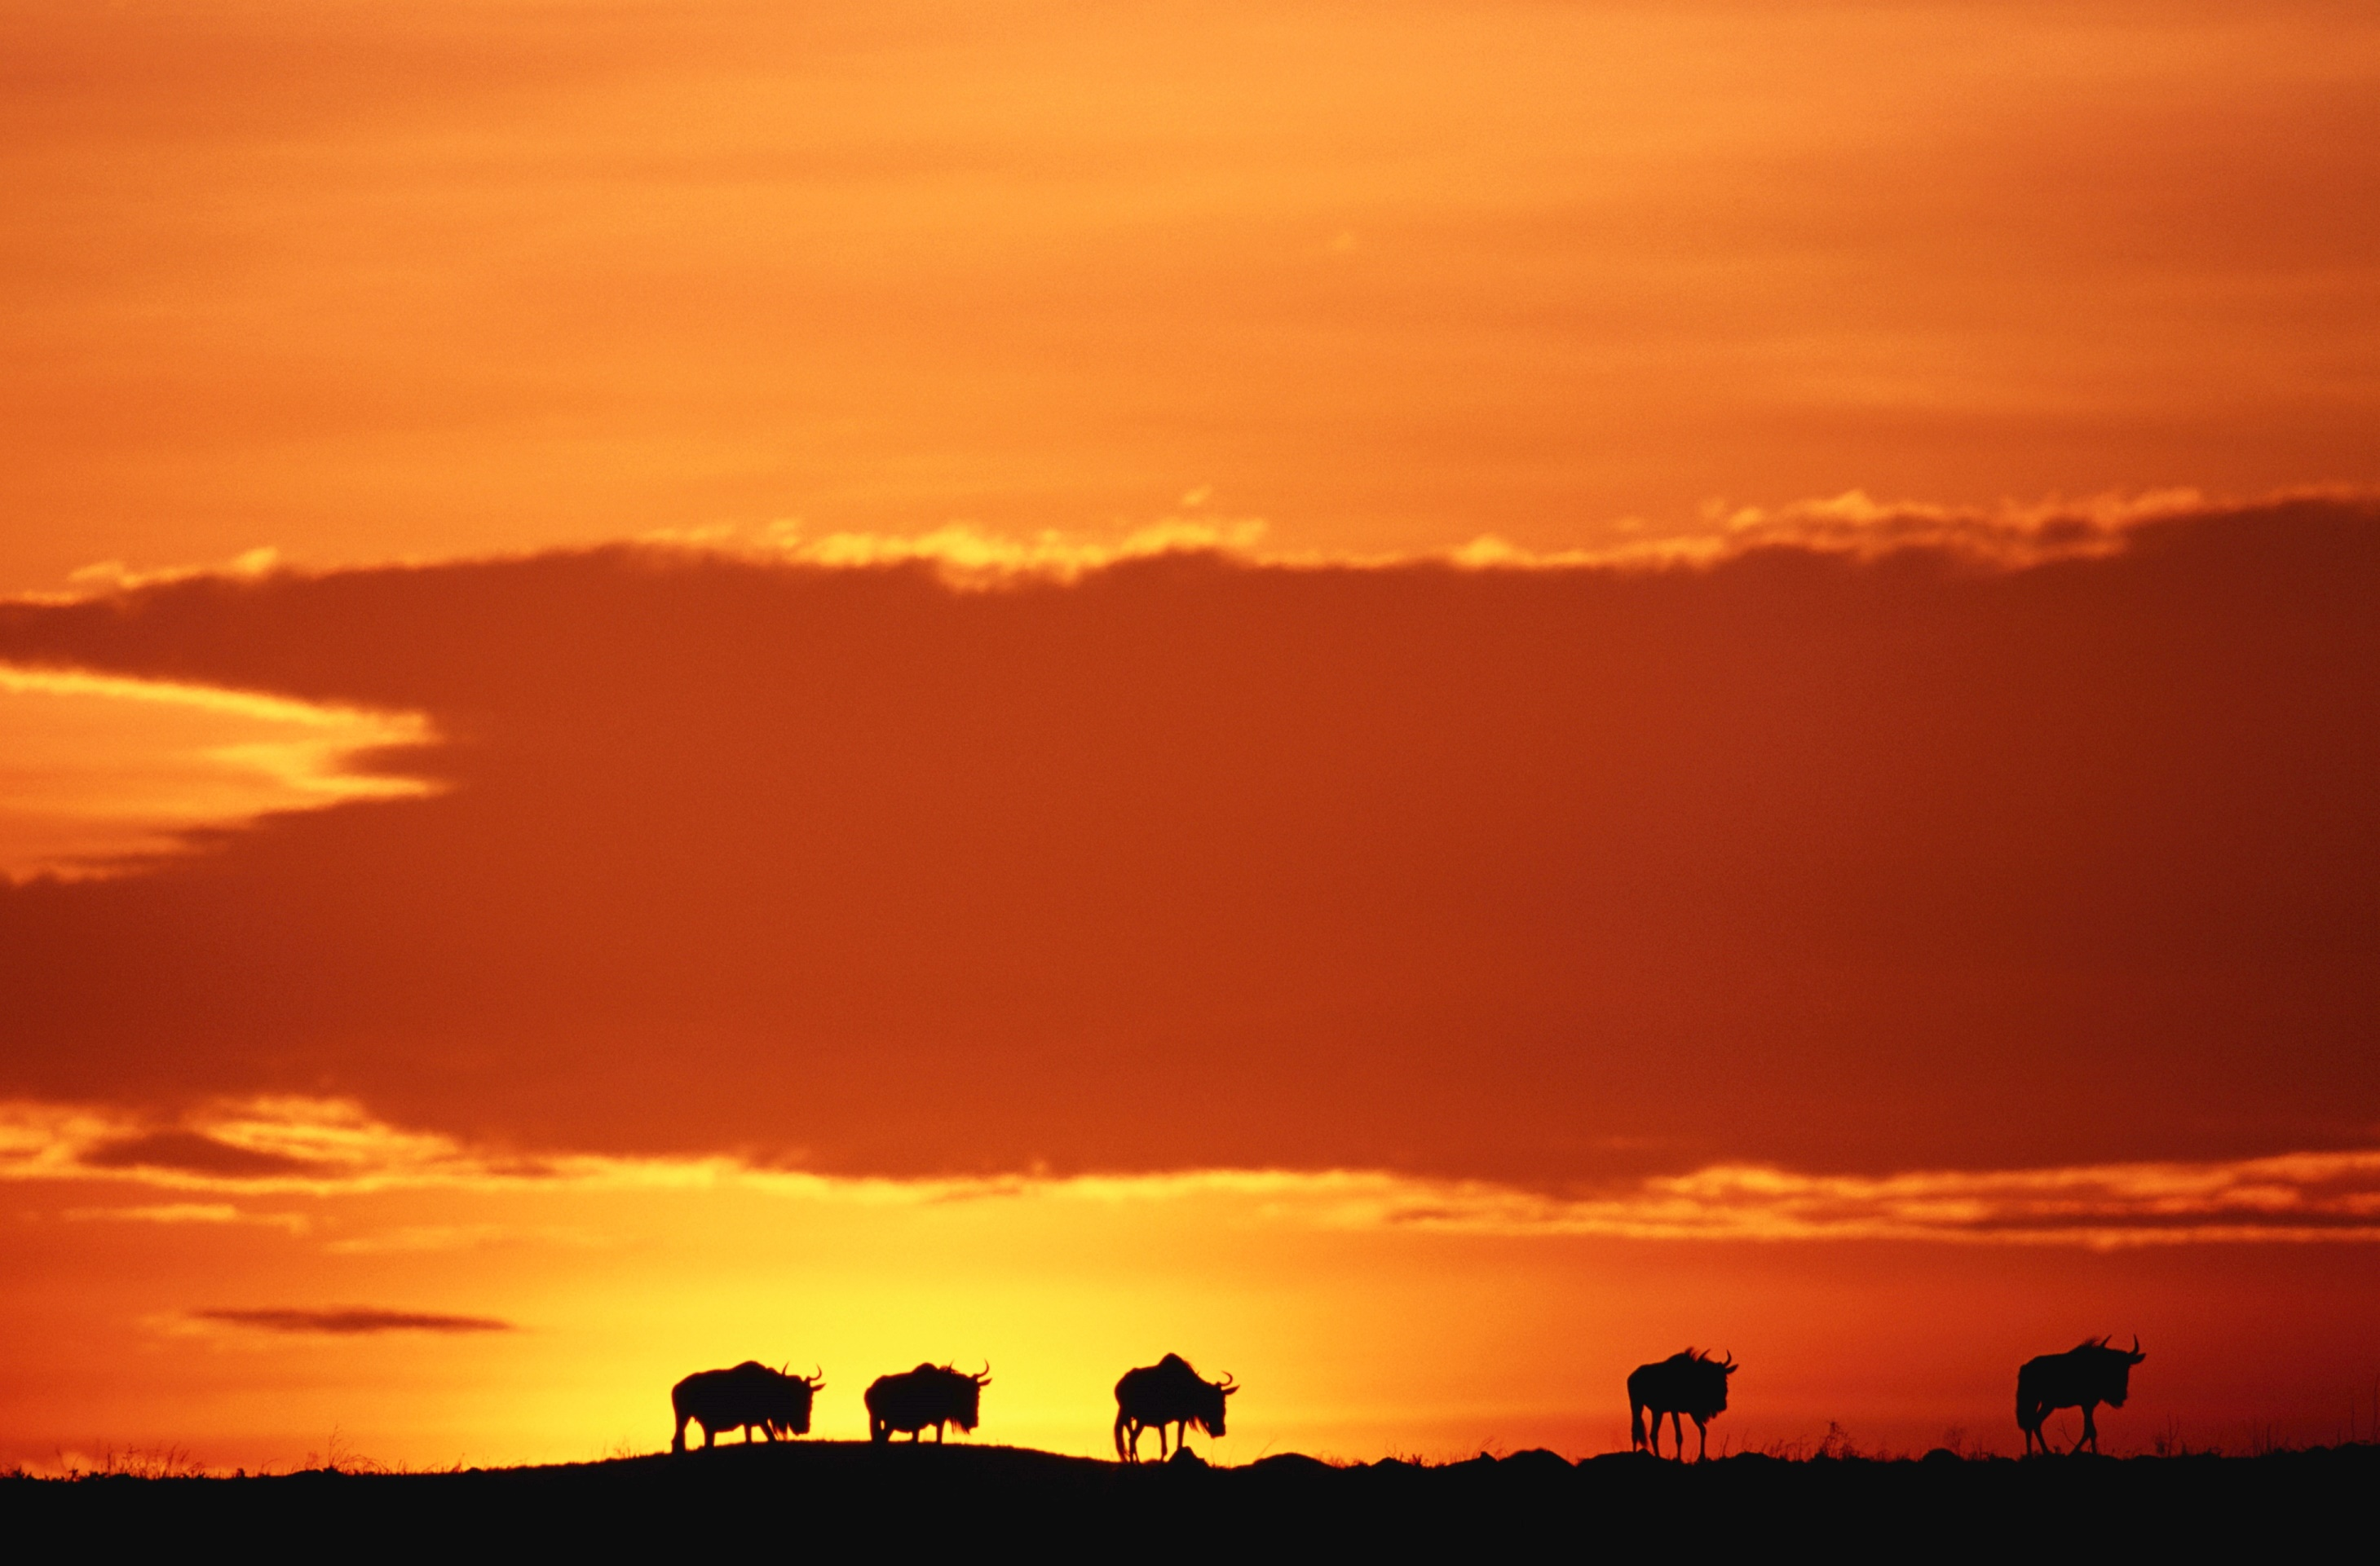 Wildebeest silhouettes in the Masai Mara